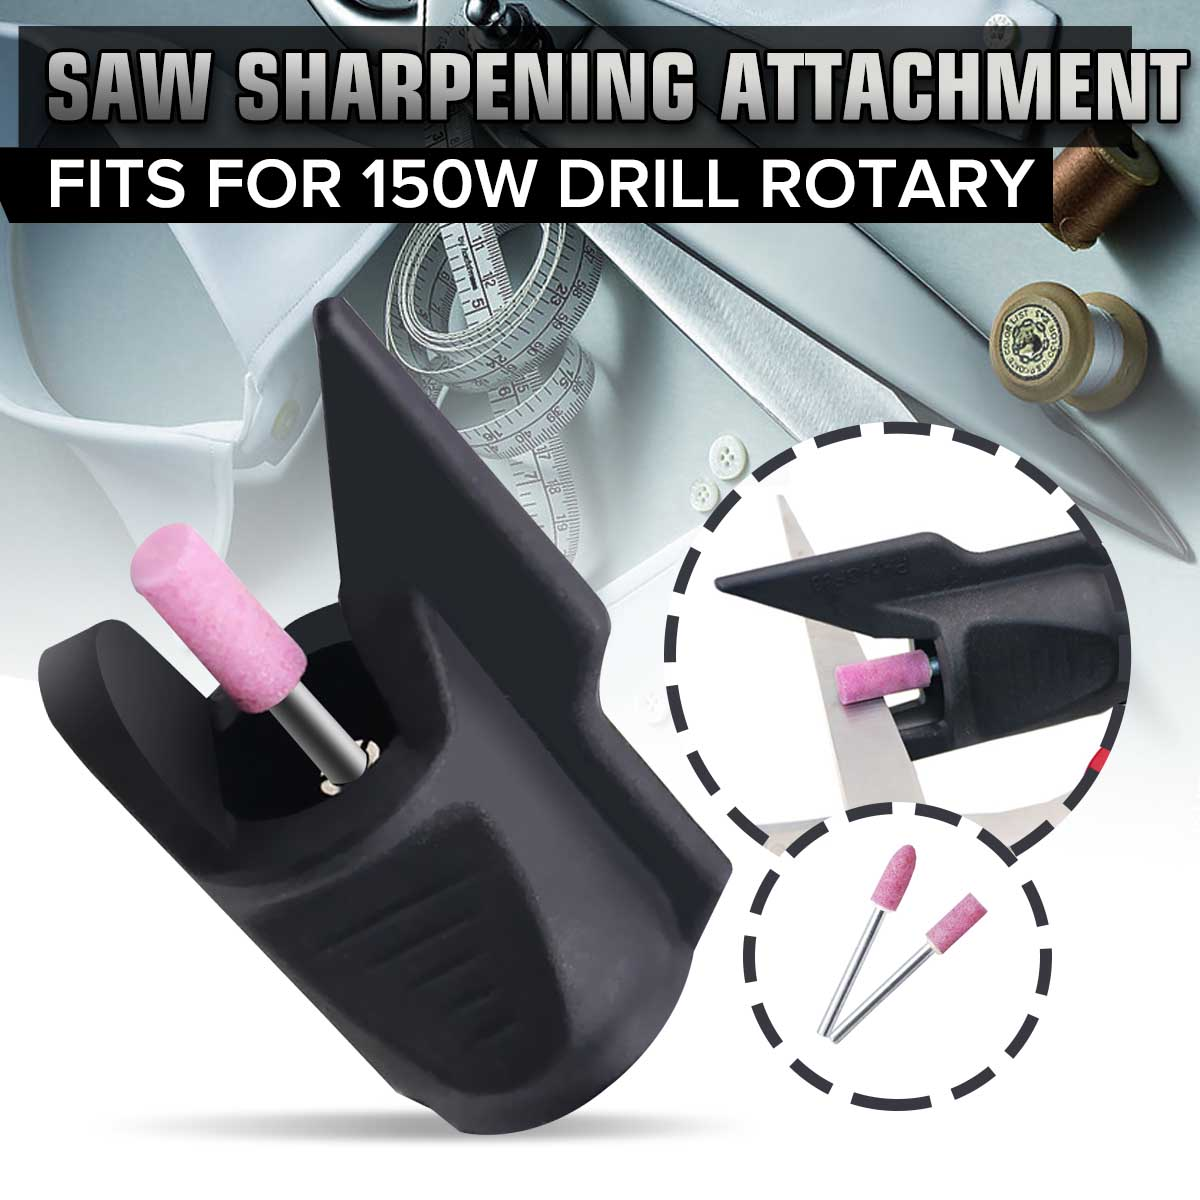 Electric Grinding Knife Chain Tool Saw Sharpen Sharpening Attachment Electric Rotary Power Drill Adapter Grinding Polishing Bit